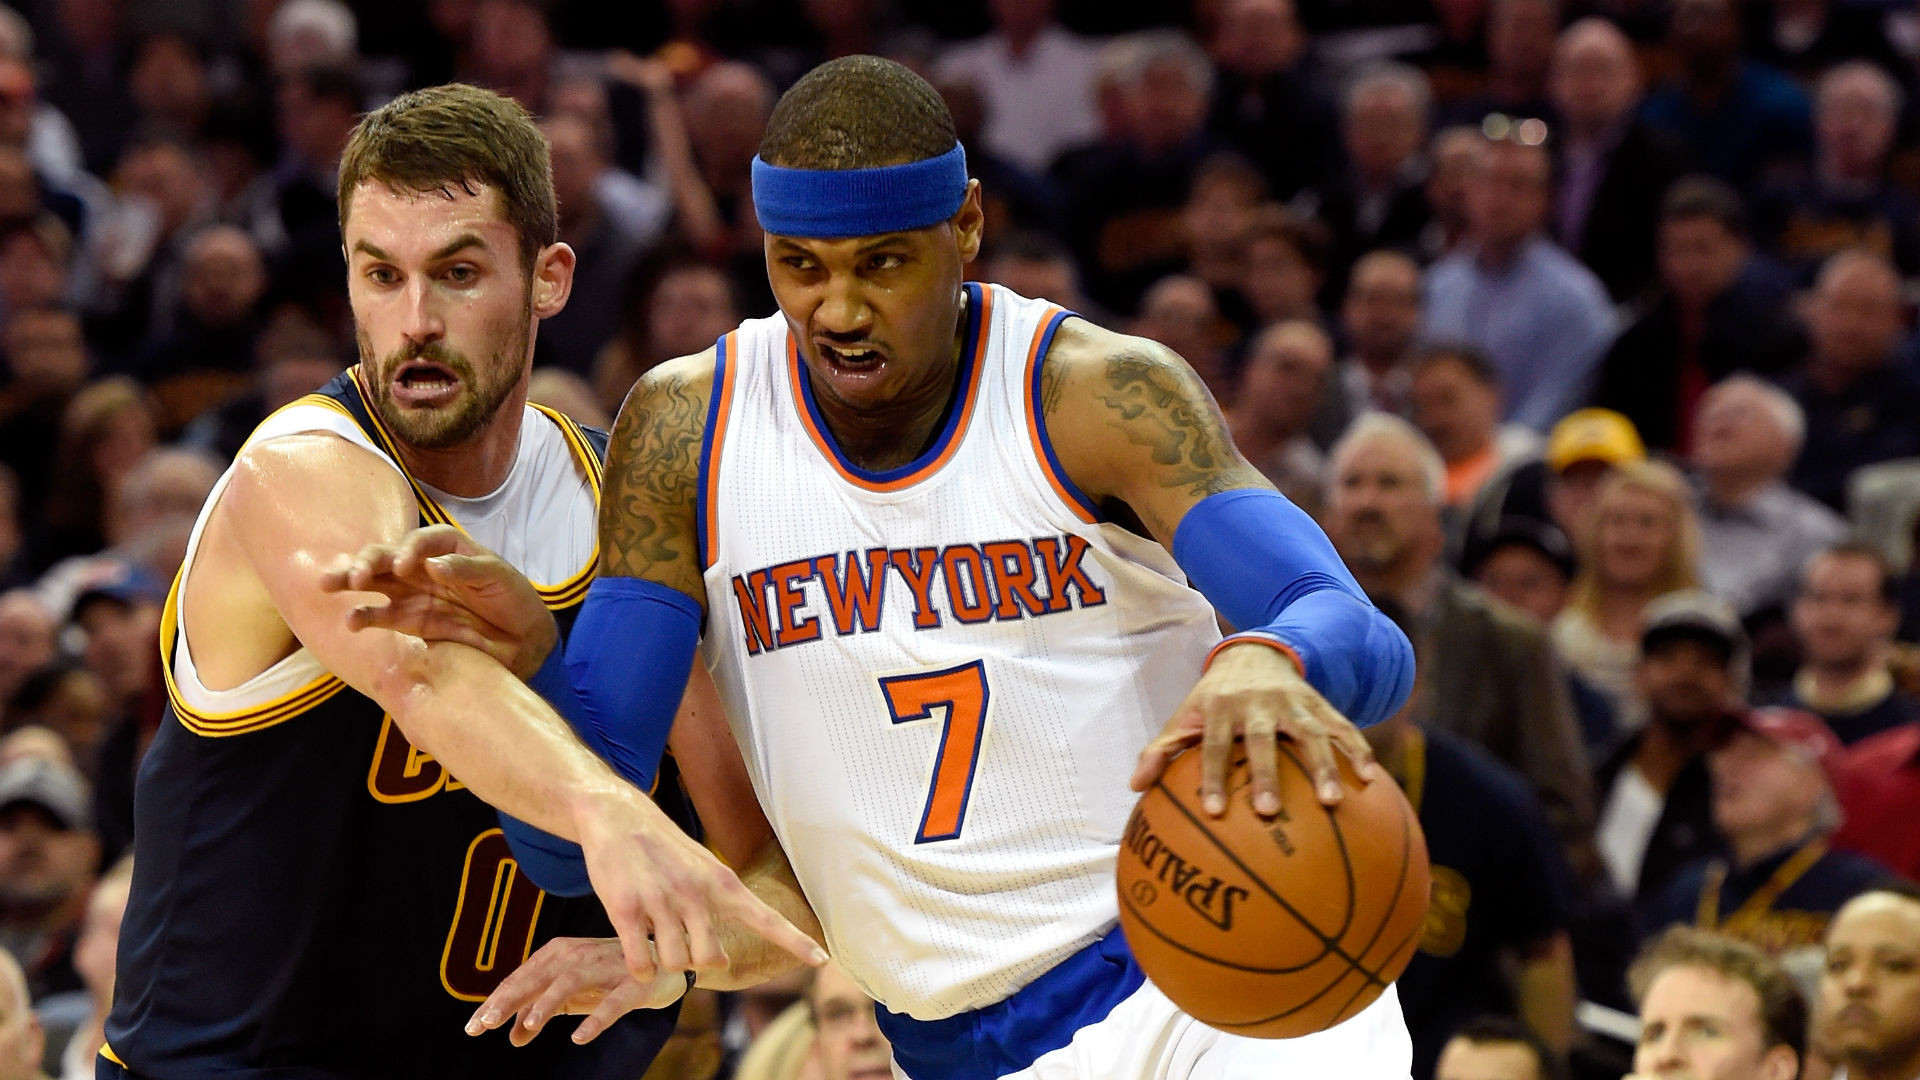 1920x1080 NBA trade rumors: Cavaliers want Carmelo Anthony...under one condition |  NBA | Sporting News